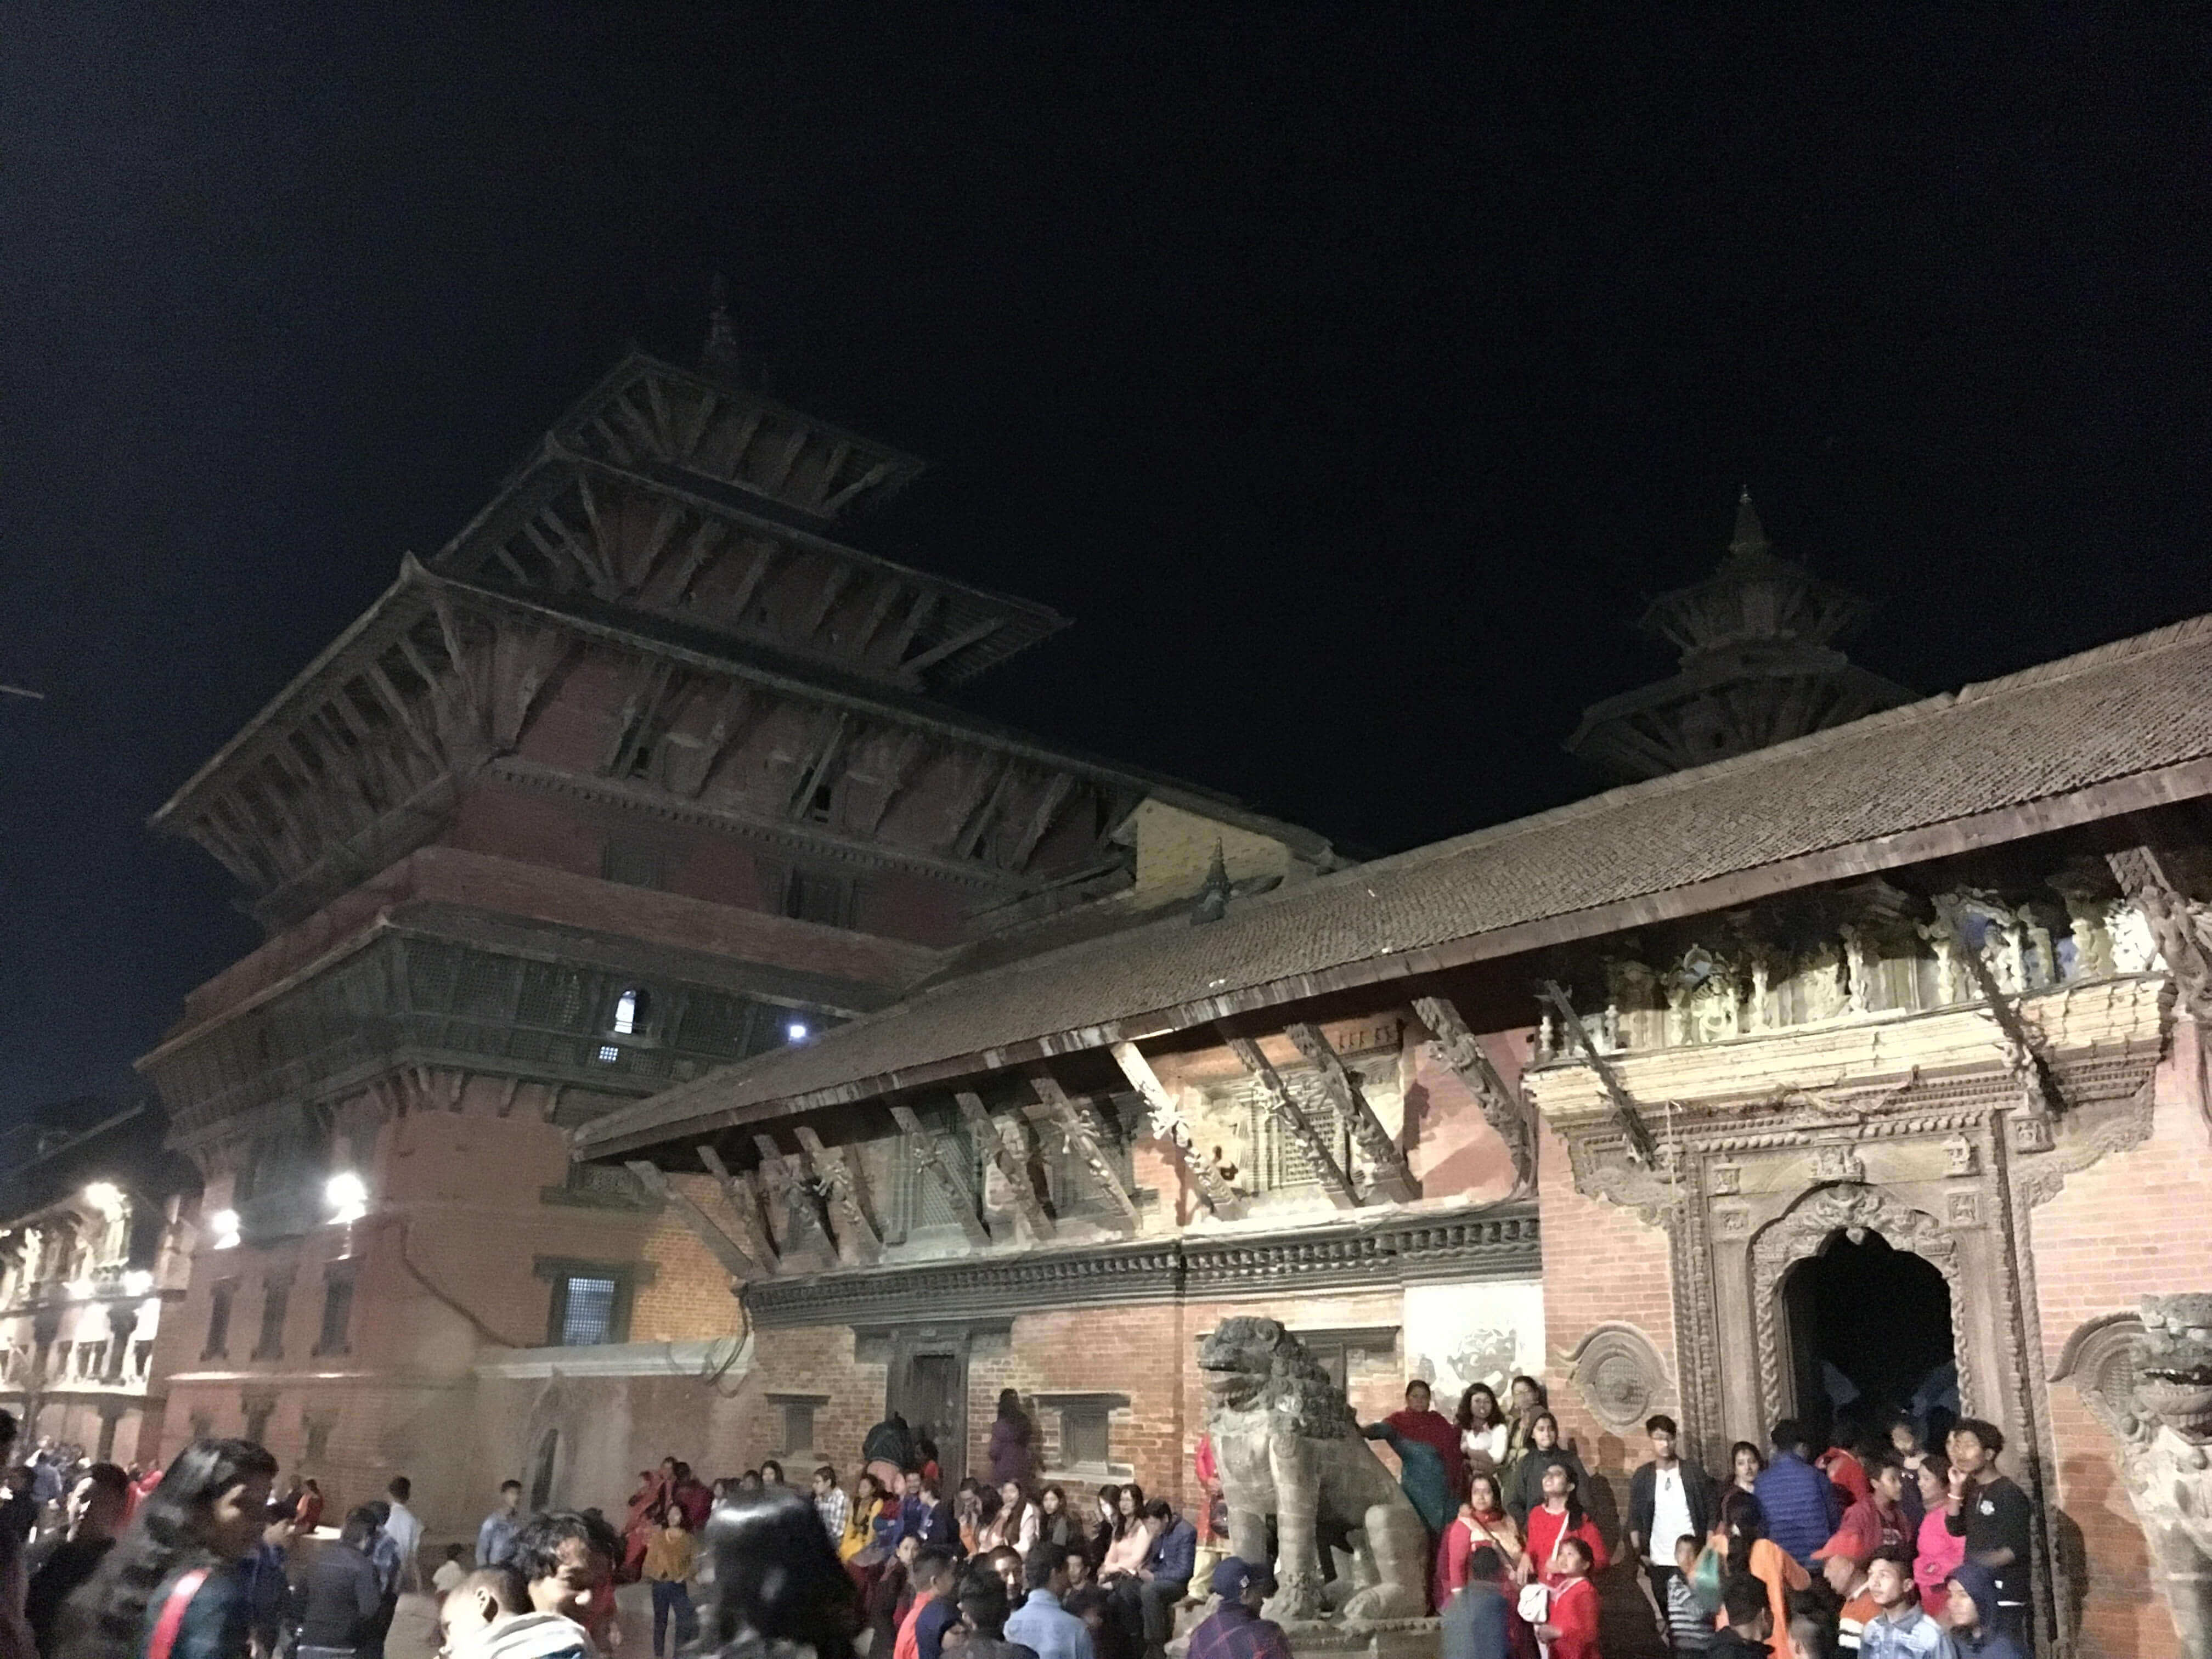 Thousands throng Mangal Bazar in Patan to observe the Asta Matrika masked dancer parade on Friday night, received by Lalitpur Mayor Chirbabu Maharjan after 23 years.